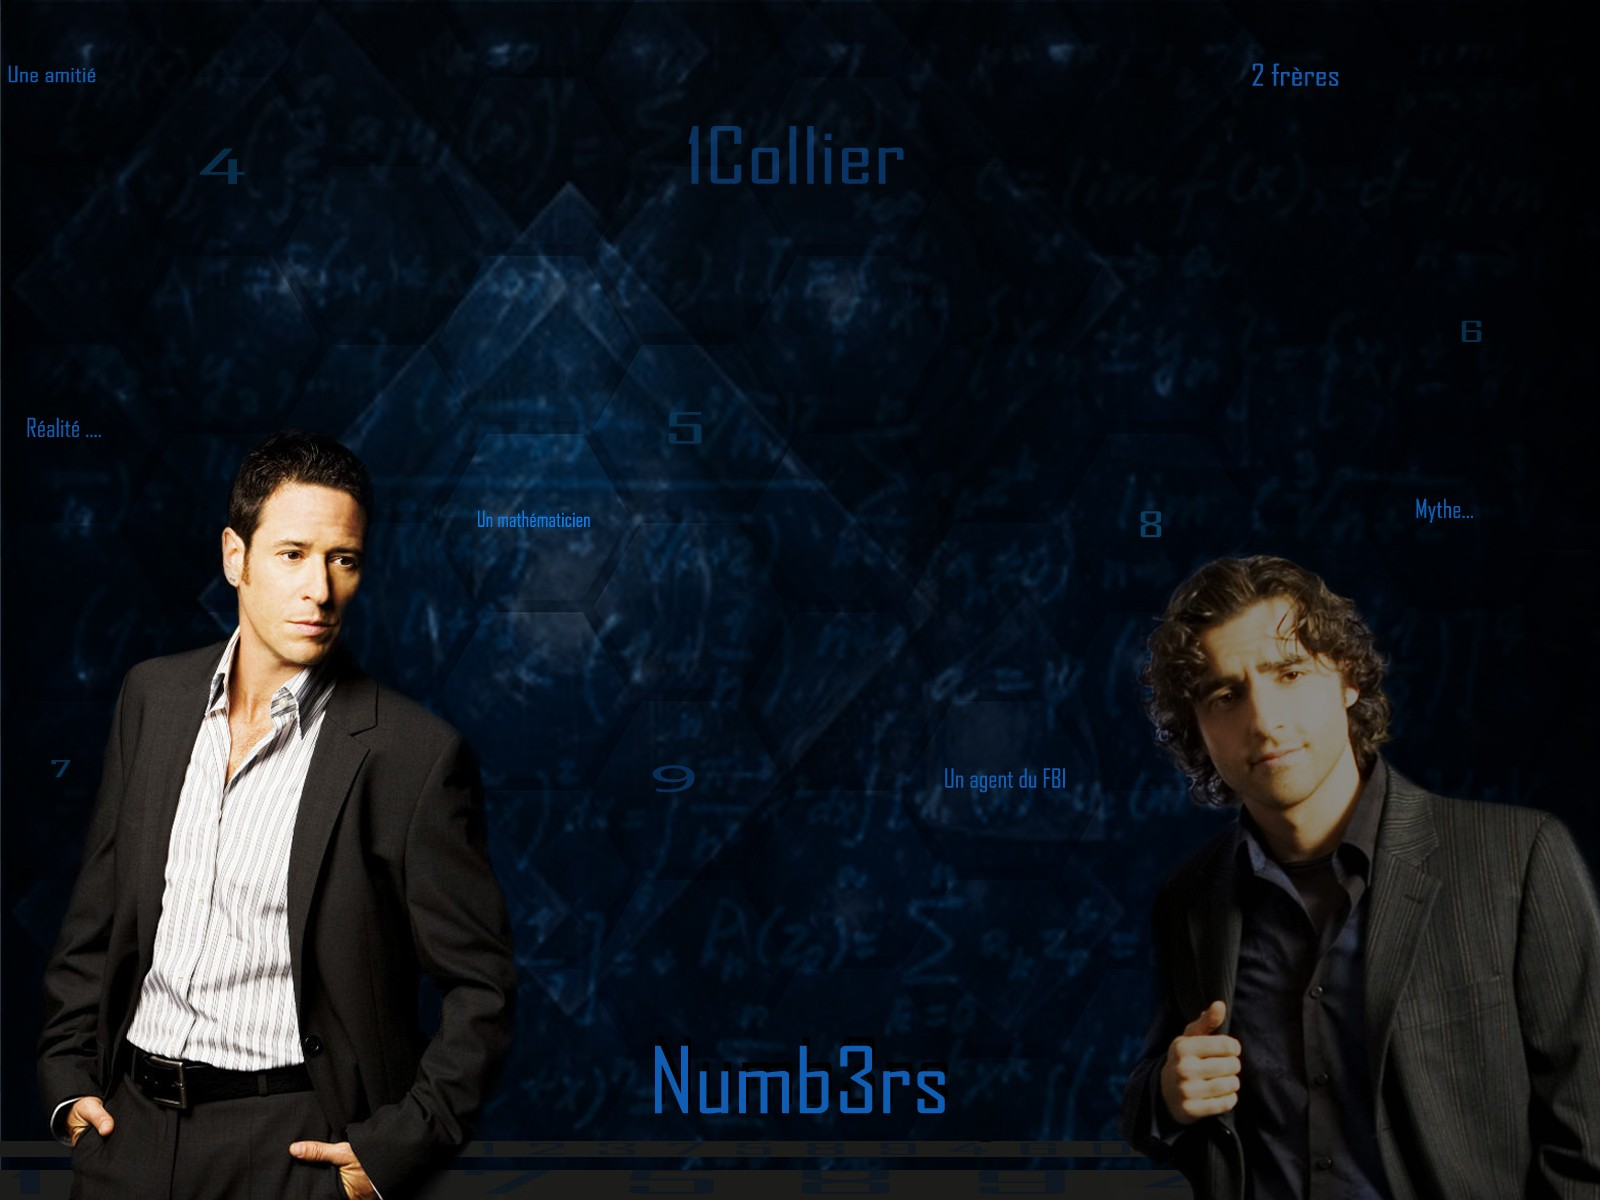 [Numb3rs] : Des maths, un agent et un consultant  -Don/???-G- Wallpa10